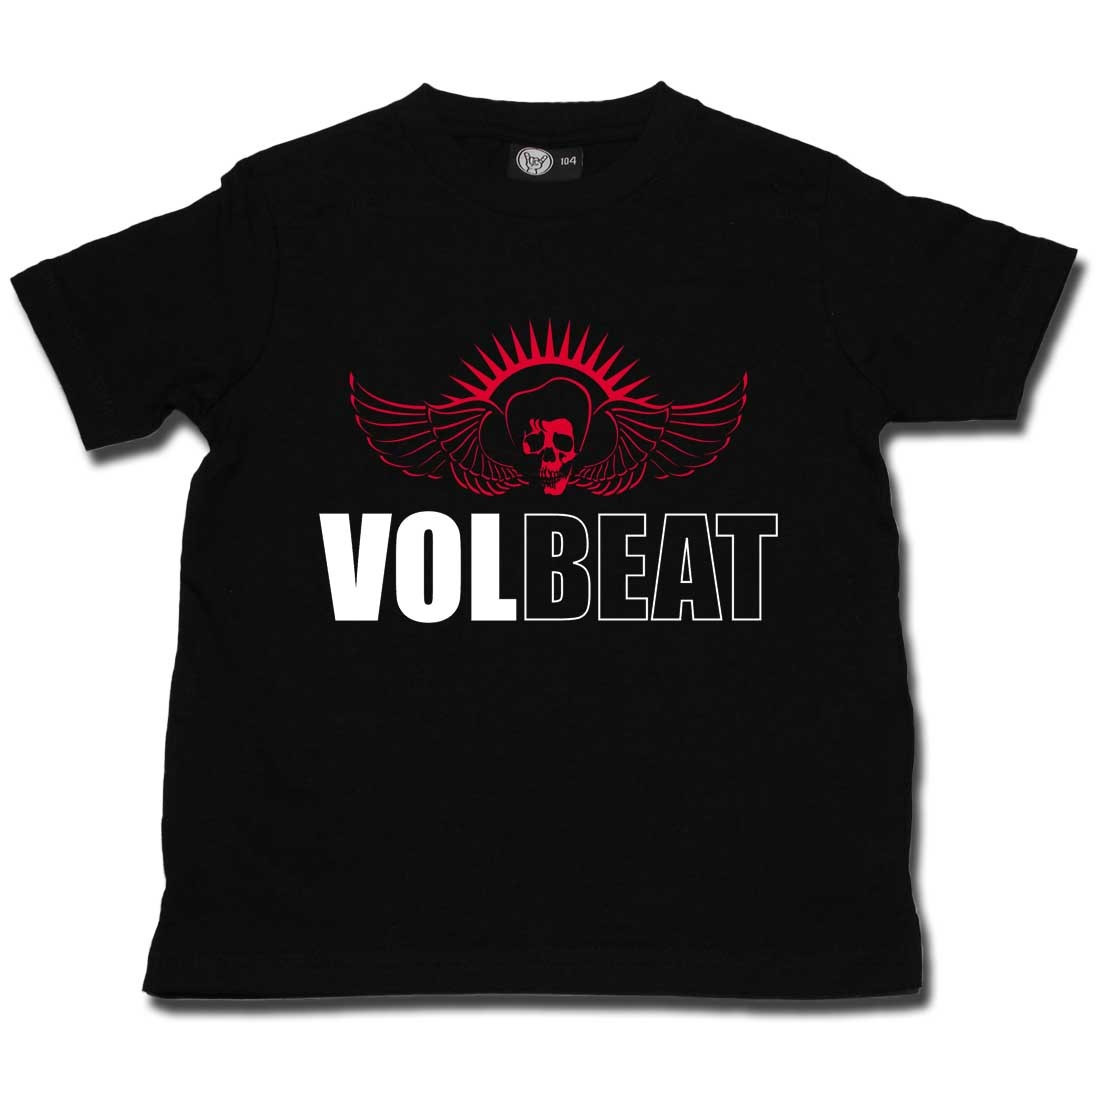 Vollbeat t-shirt Enfant Skullwing Metal-Kids (Clothing)